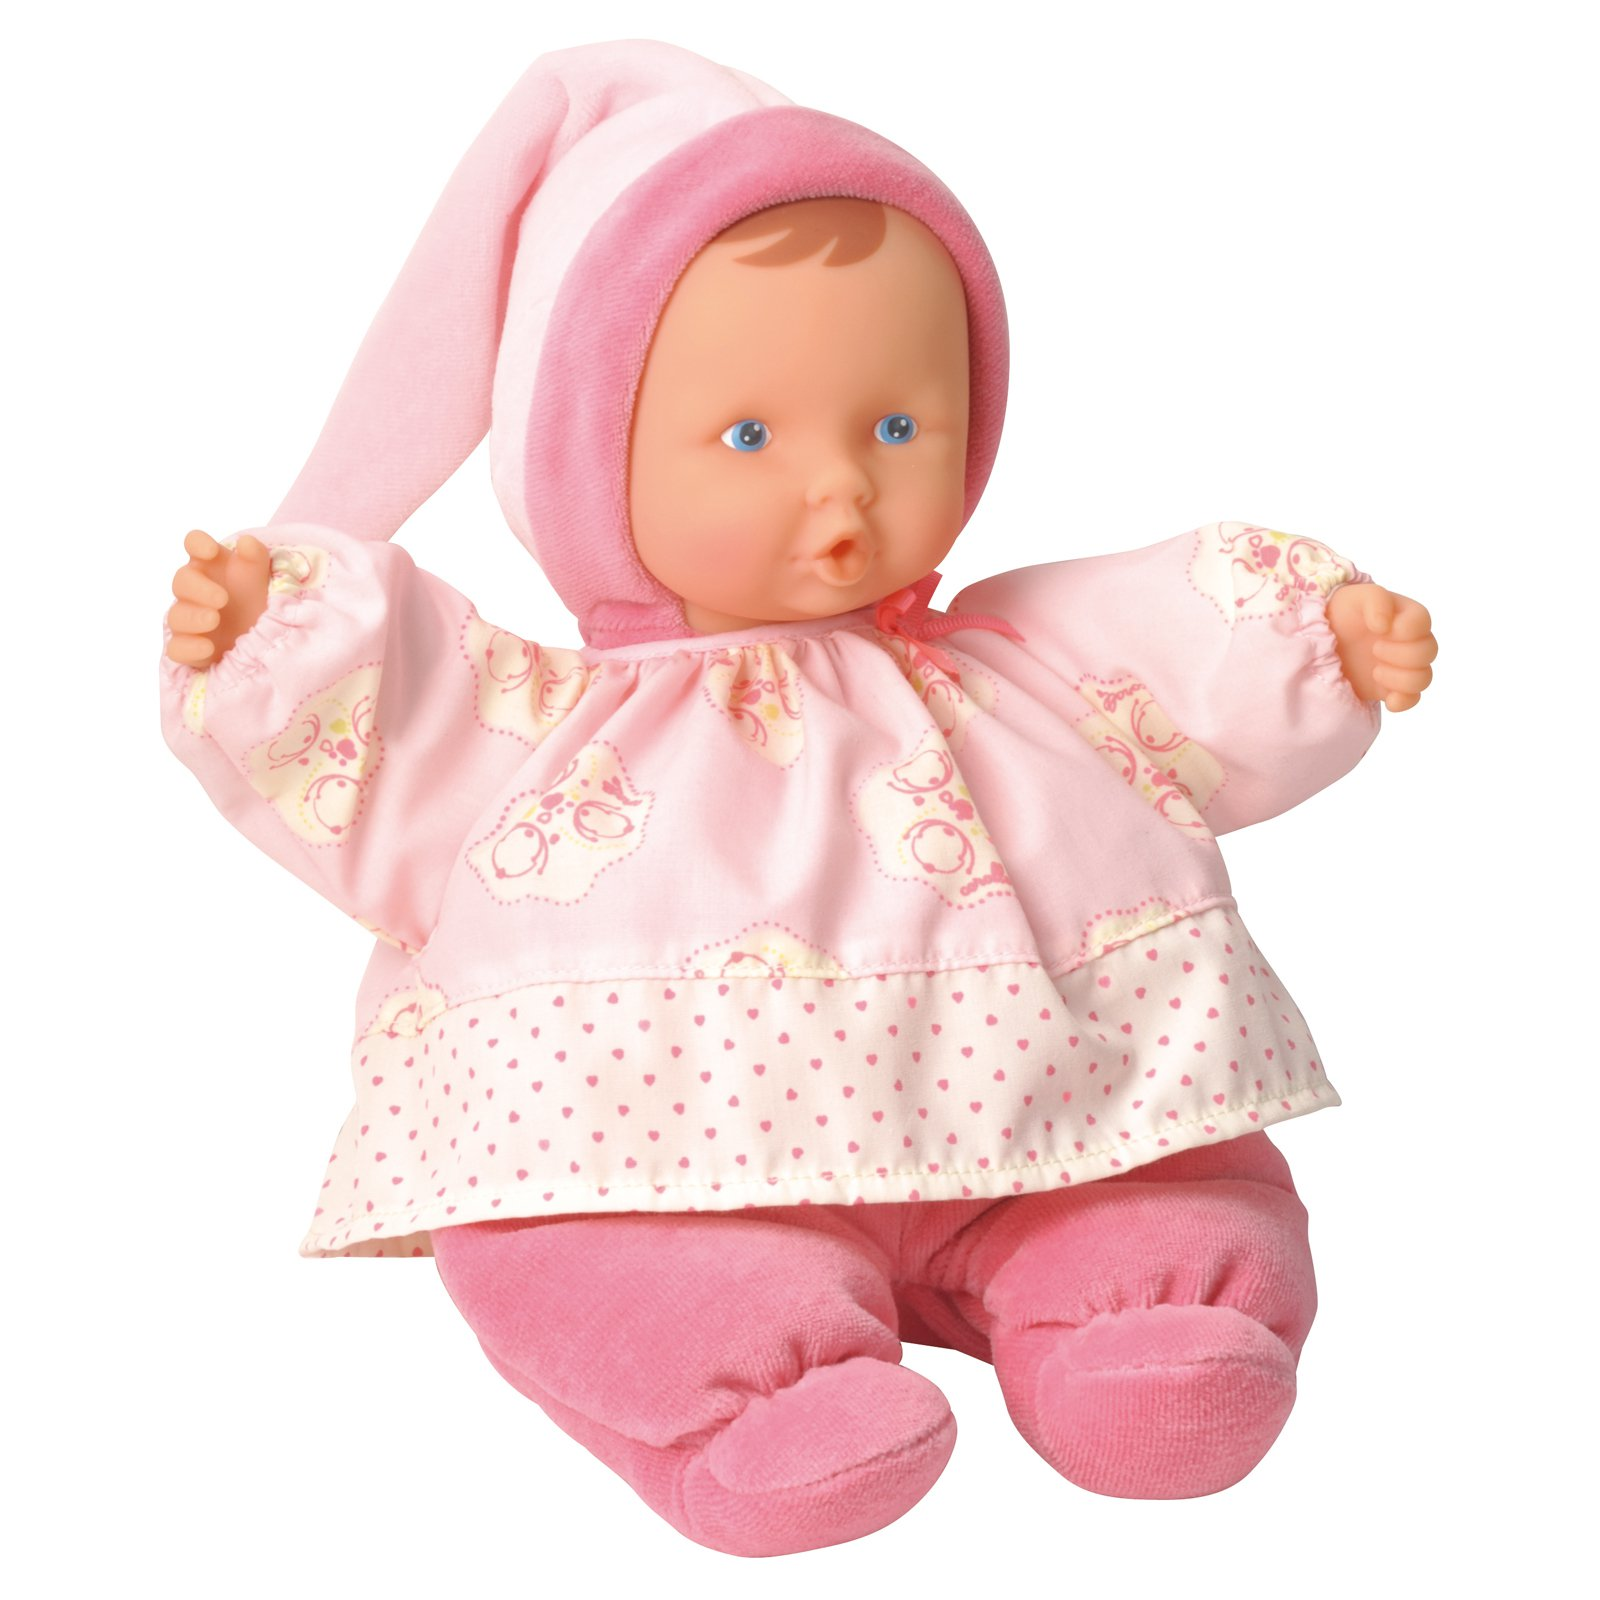 Corolle Barbicorolle Babipouce Pink Cotton Flower 11 in. Doll by Corolle